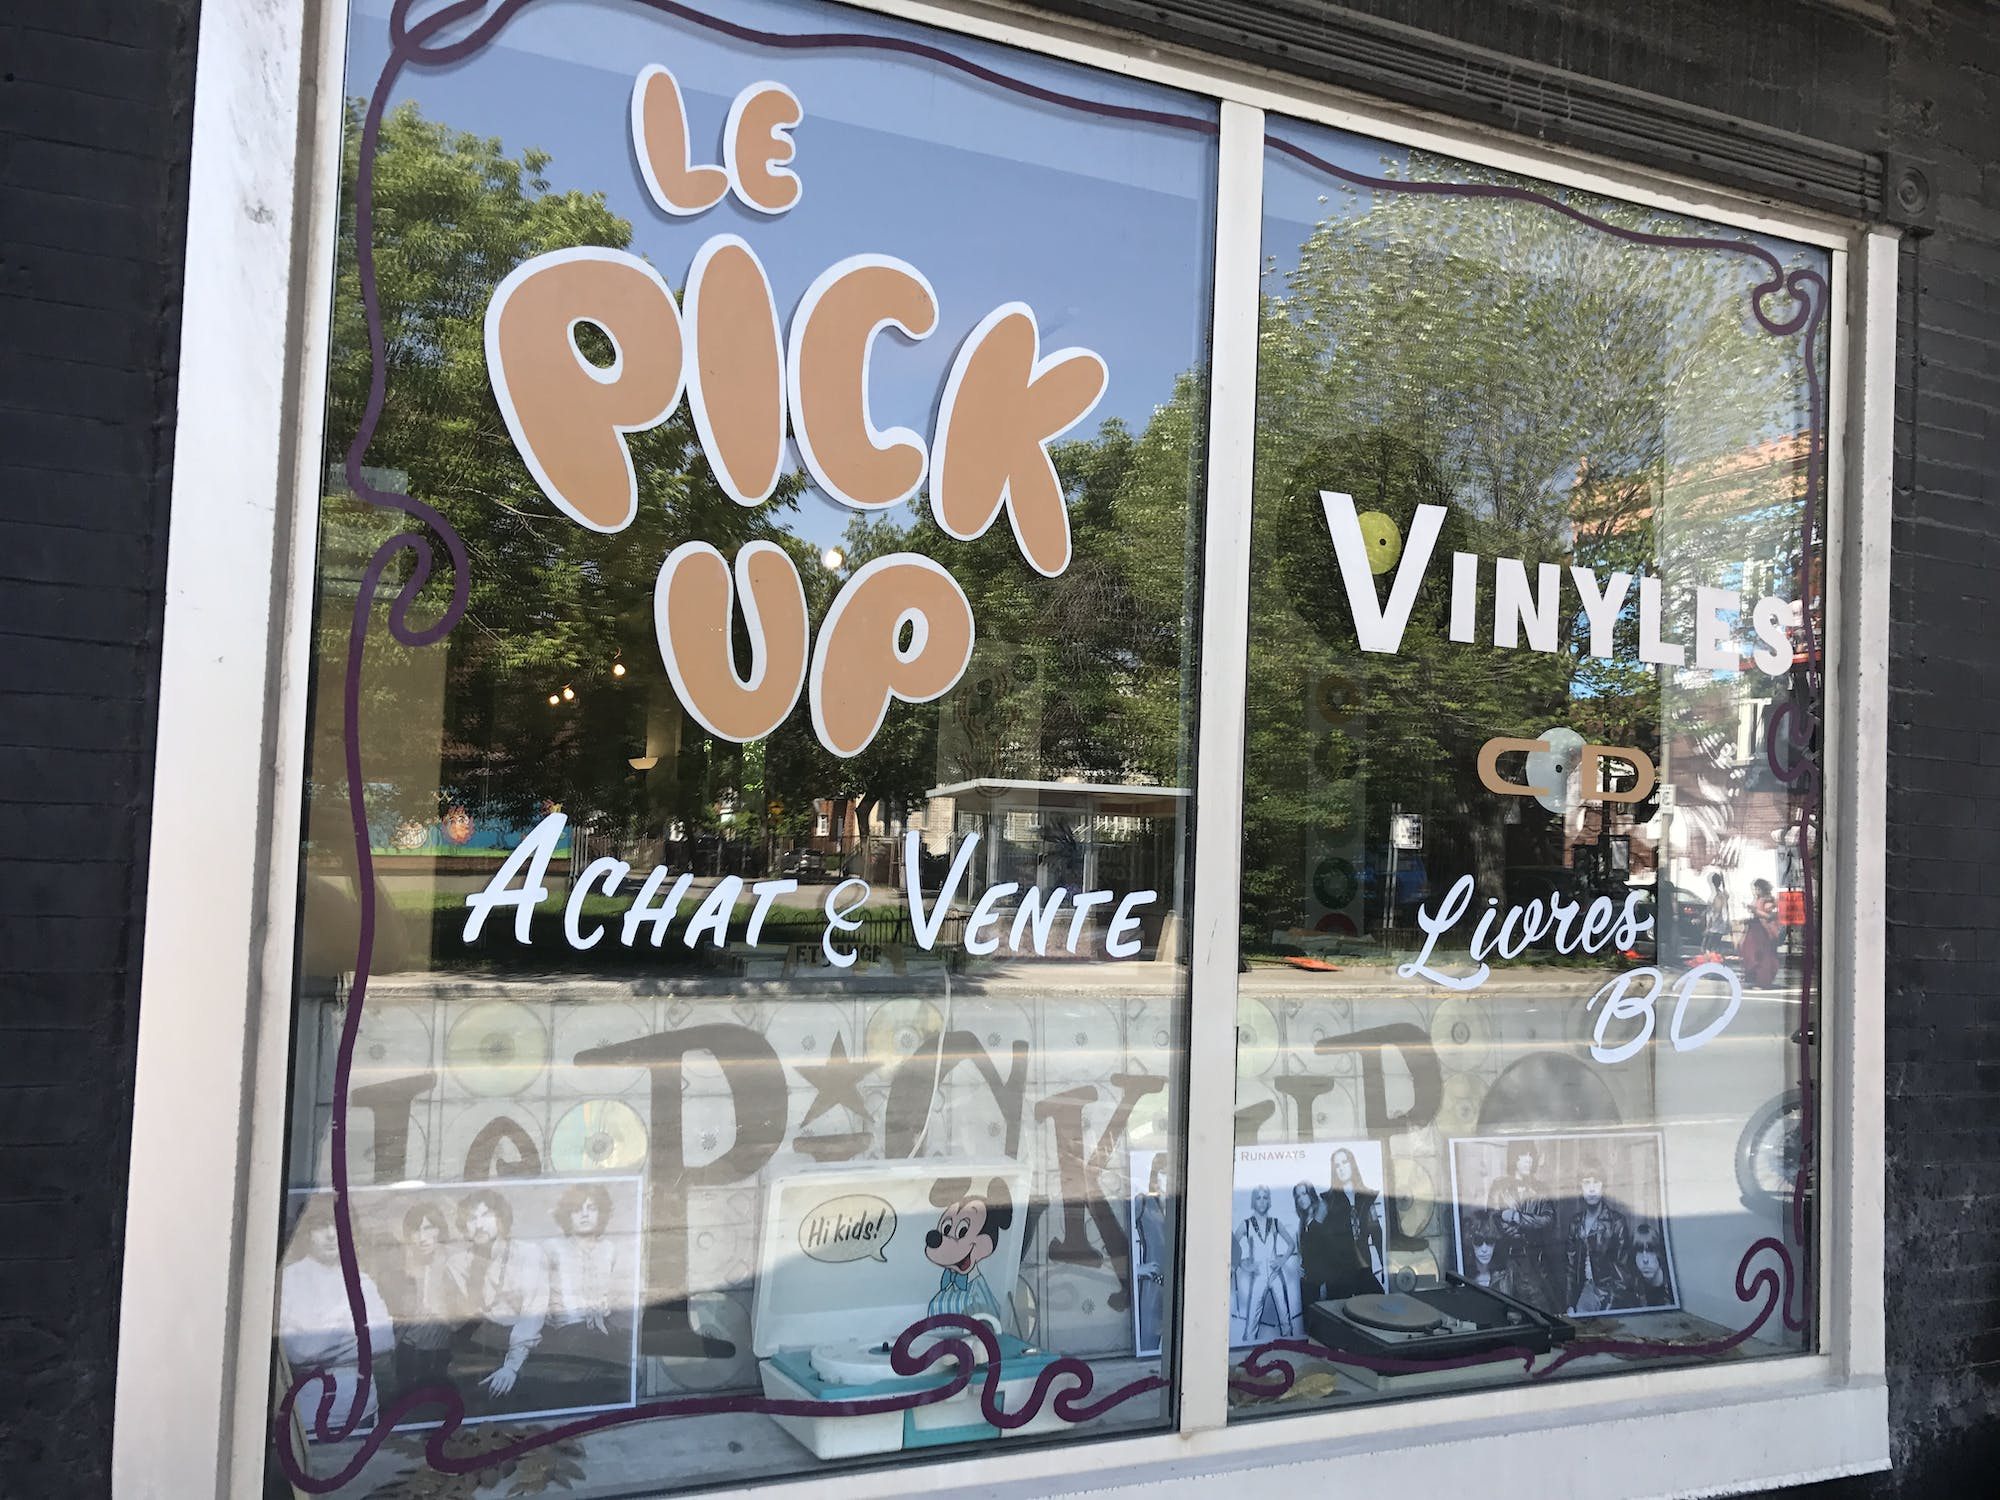 Le Pick-Up - Record Store Image